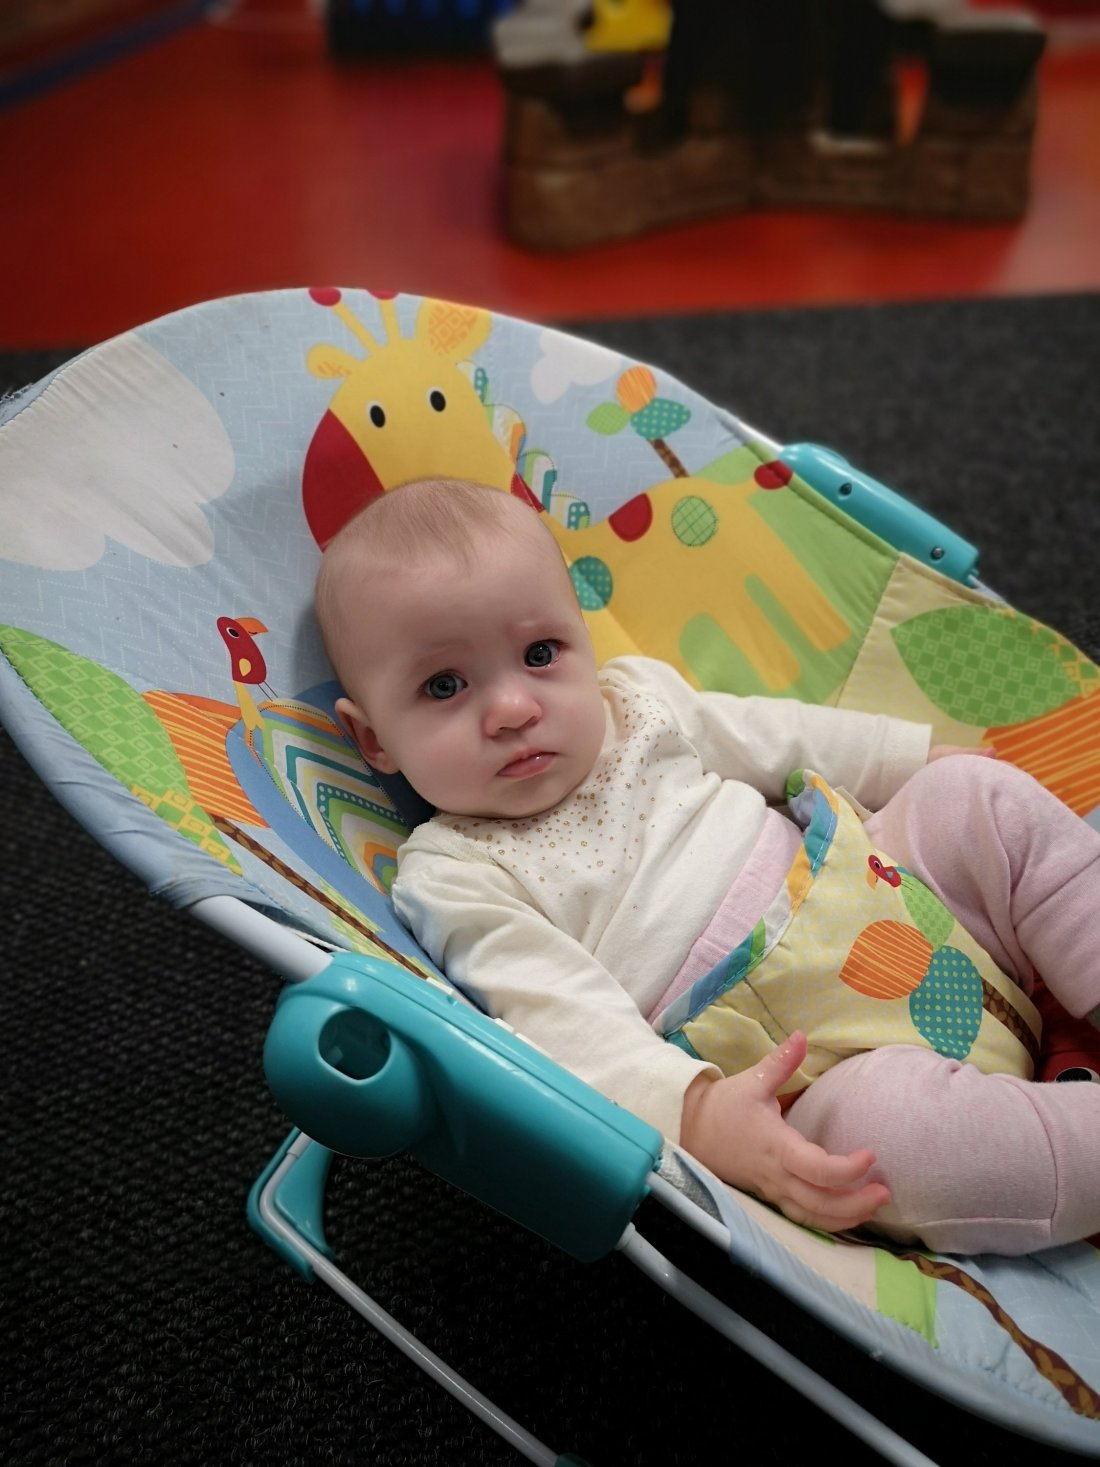 Baby in infant seat